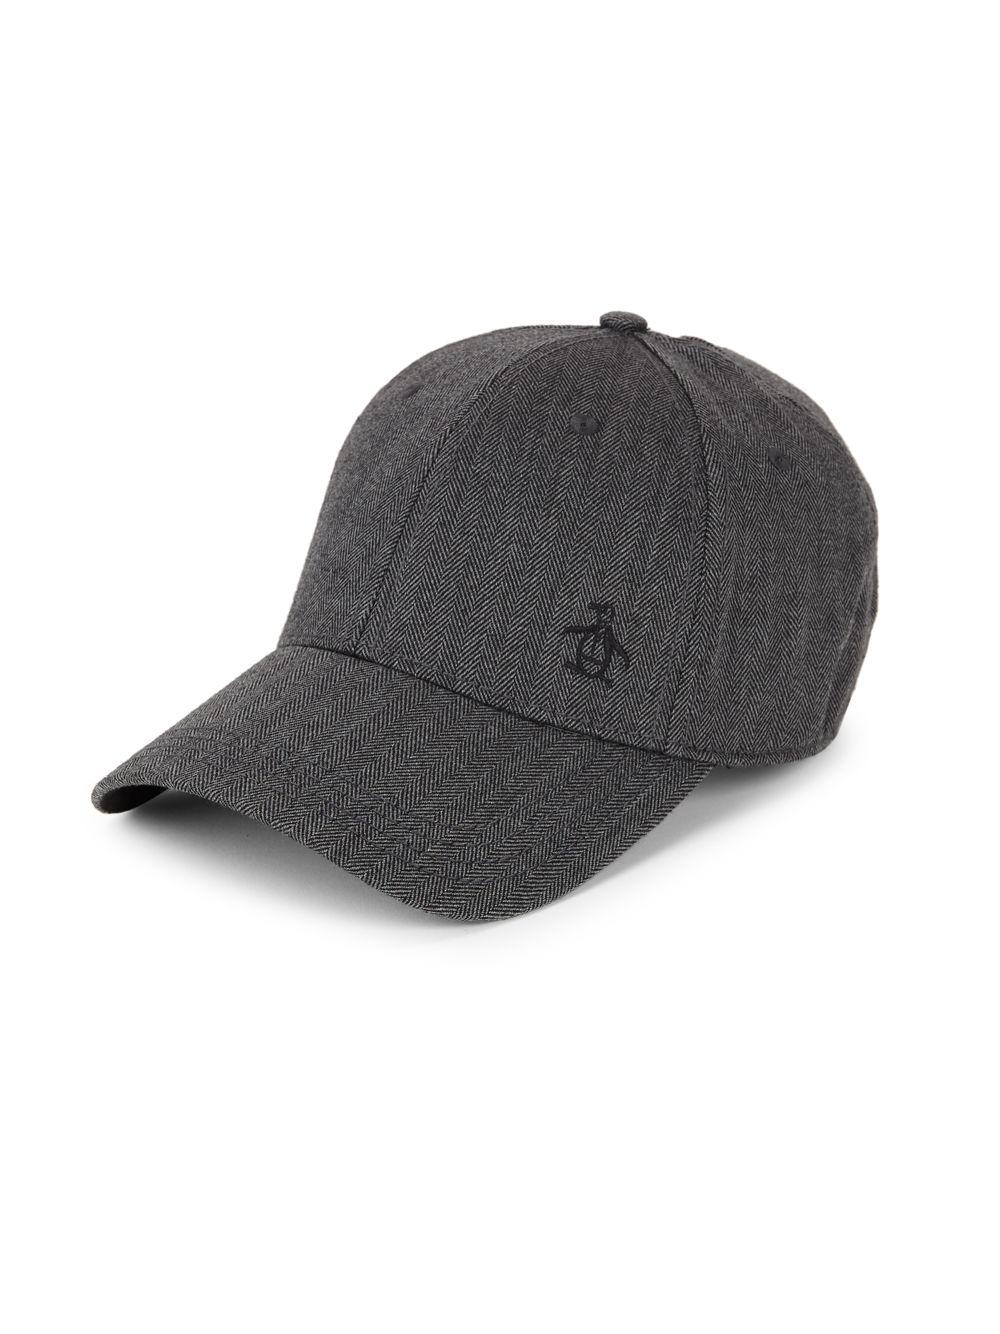 Lyst - Original Penguin Herringbone A-flex Baseball Cap in Gray for Men e72188faf33